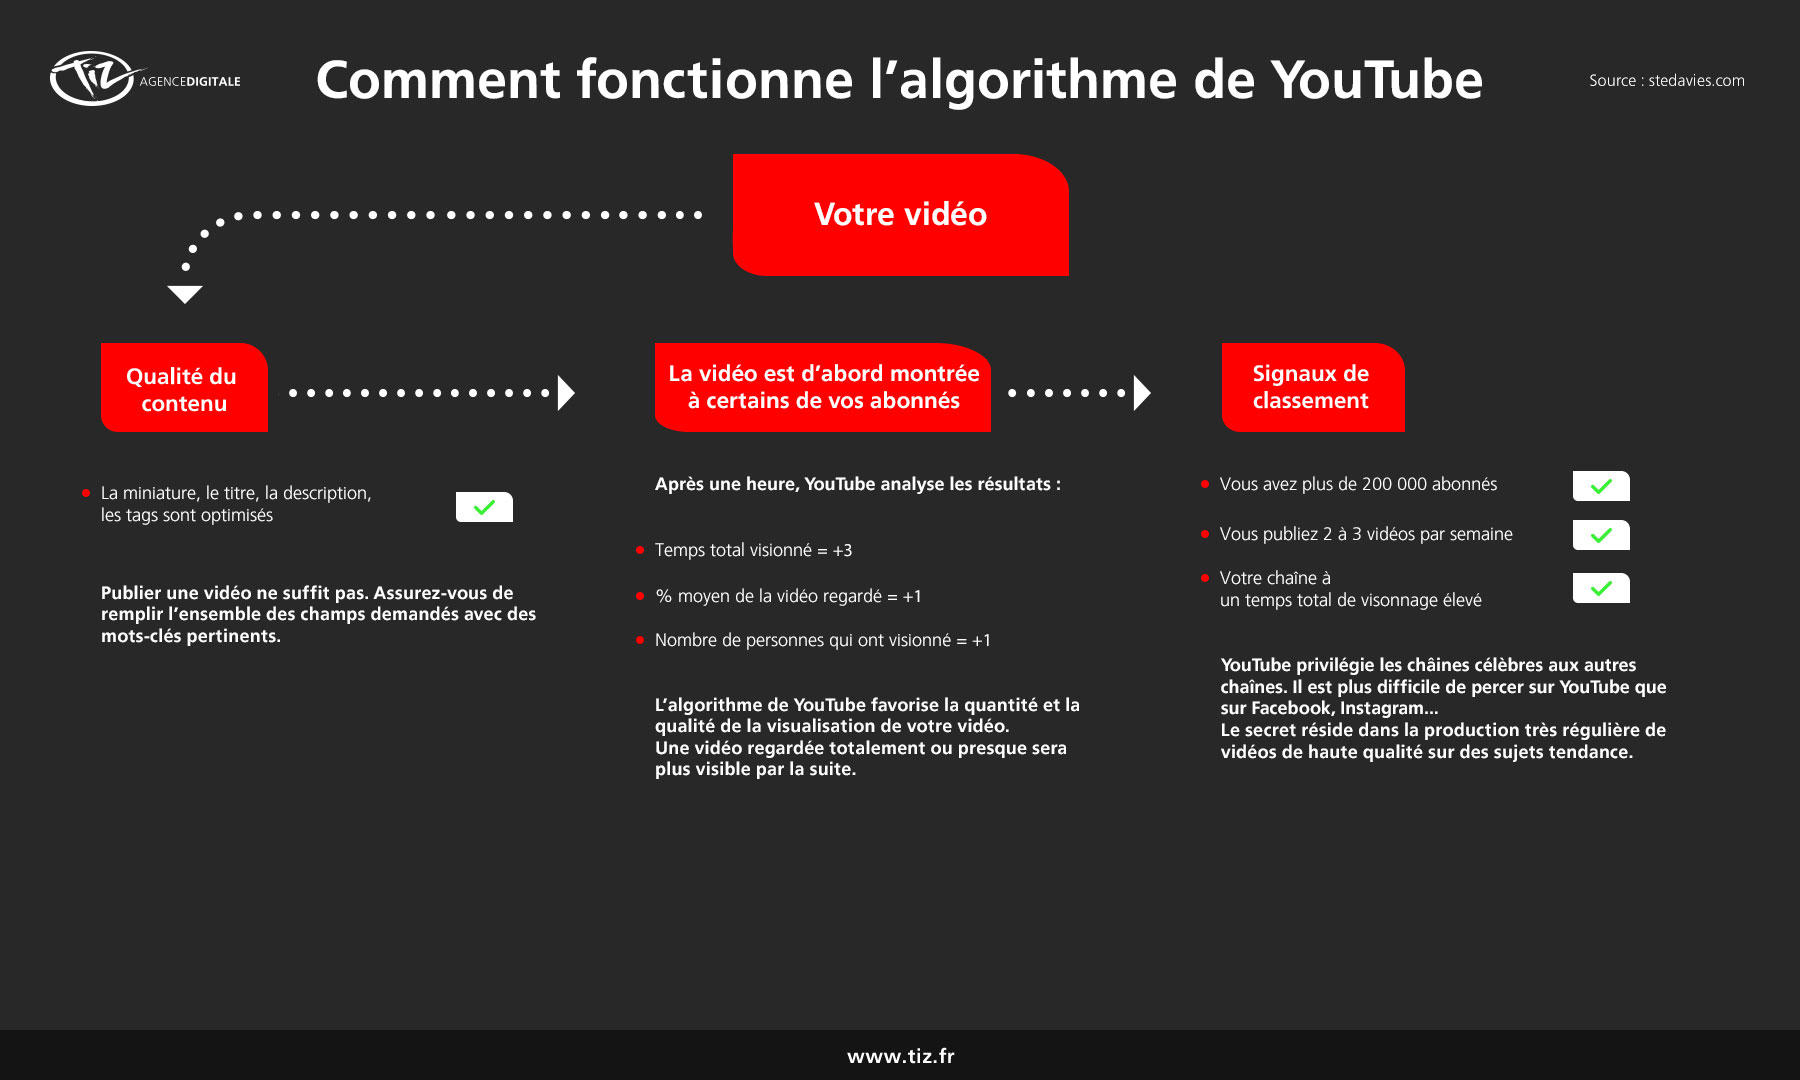 Growth Hacking Youtube : les 9 étapes pour augmenter ses vues sur Youtube ! 3